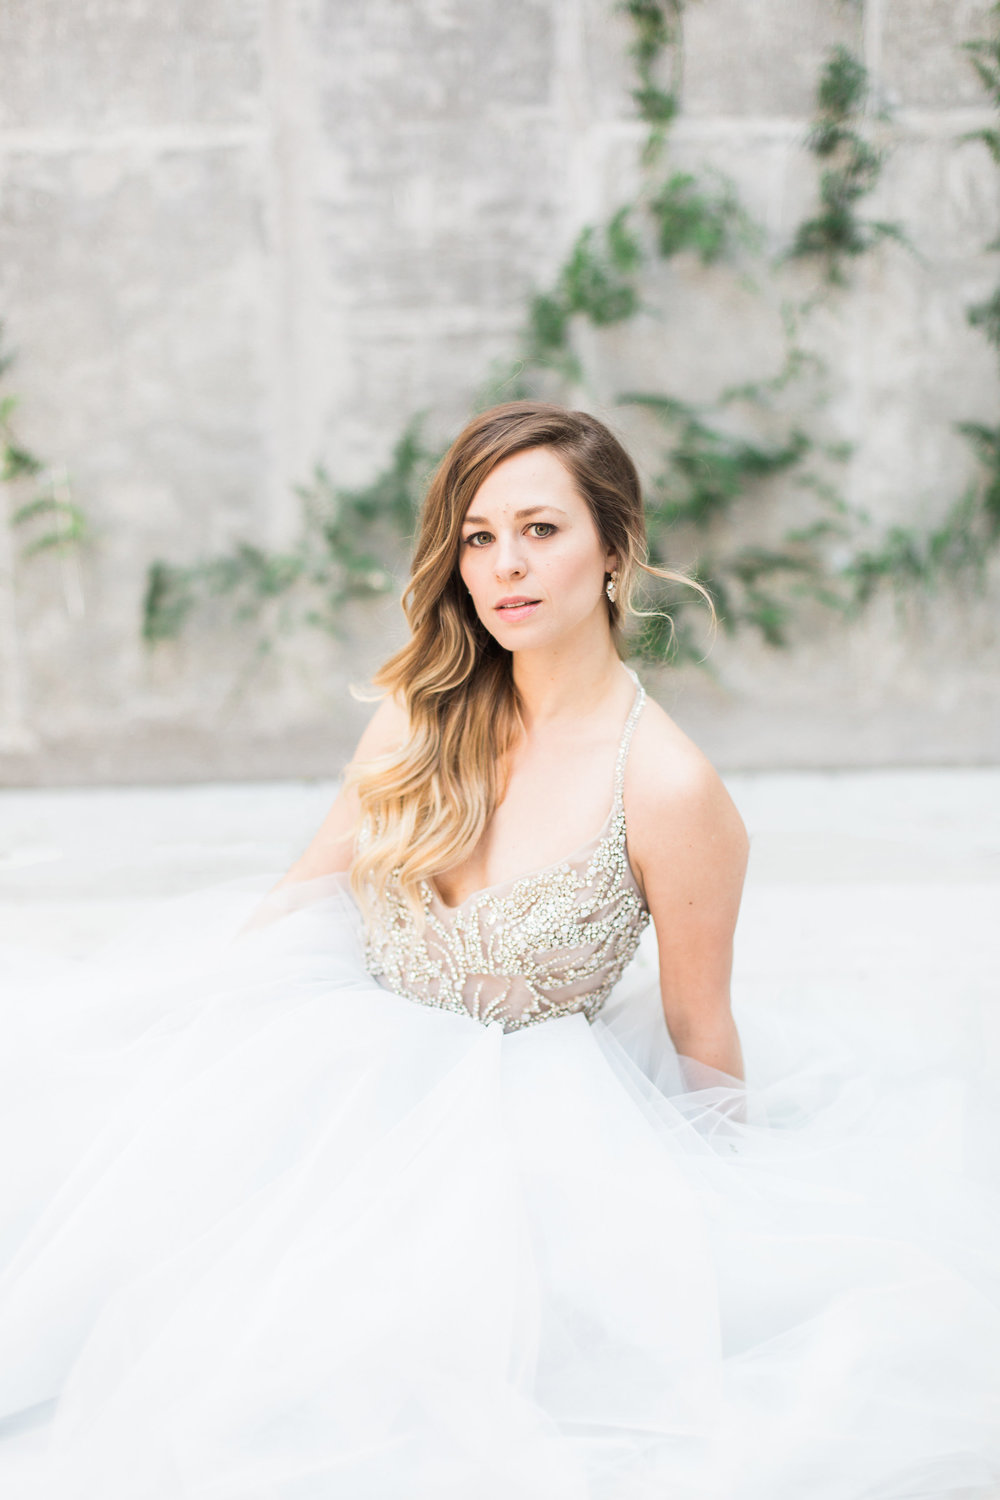 Light and airy natural bridal beauty